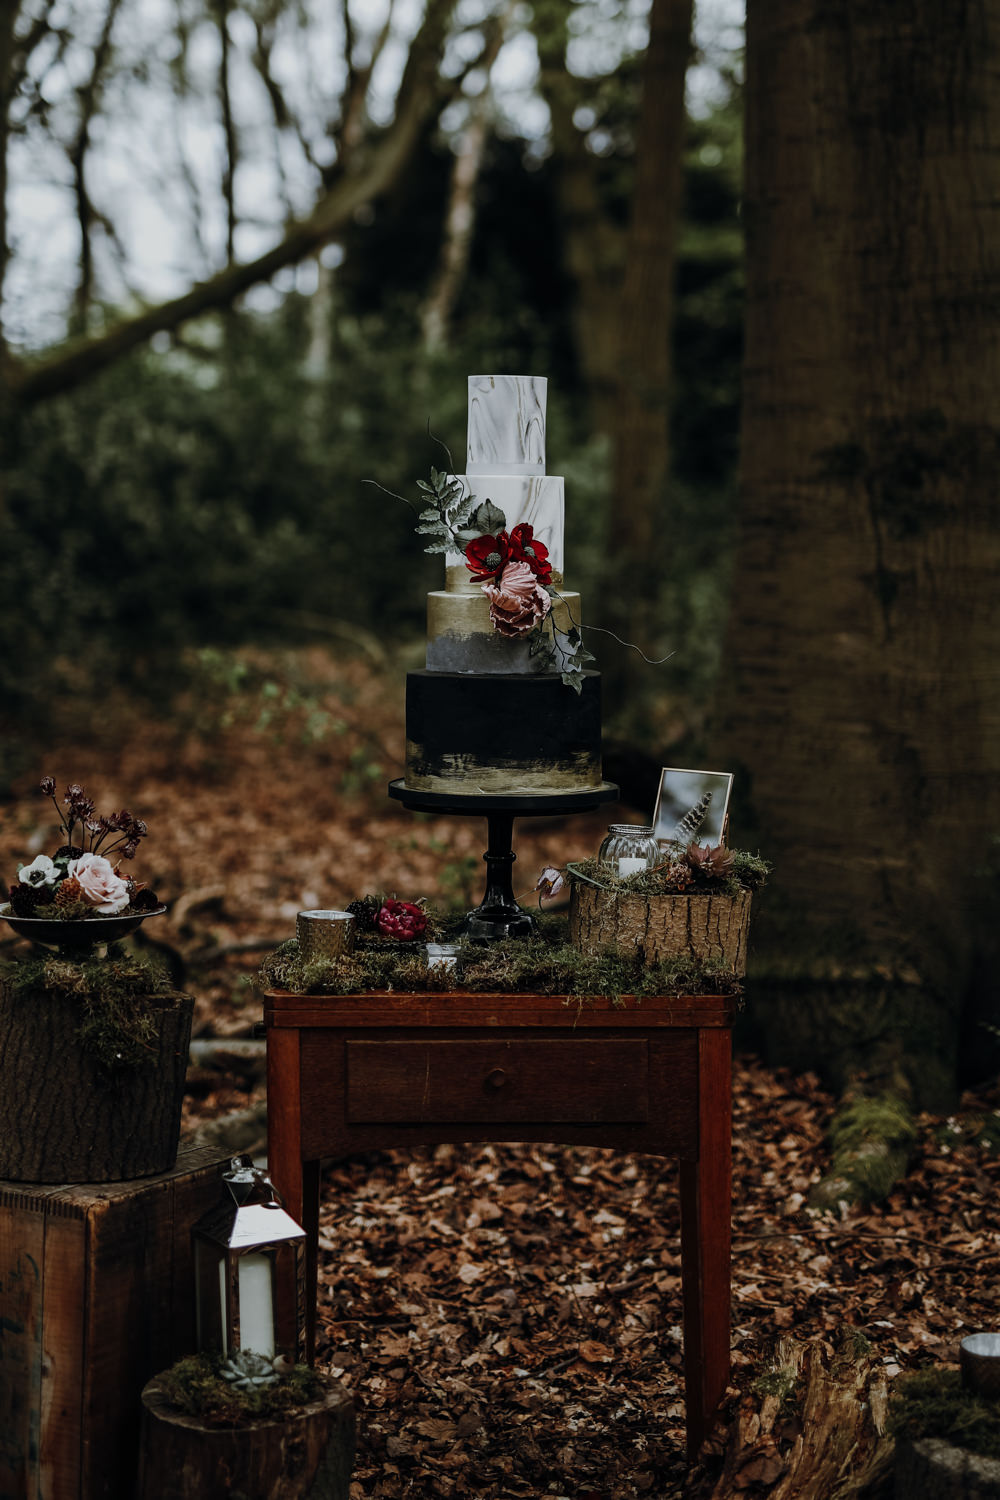 Cake Table Furniture Decor Moss Logs Flowers Candle Modern Gothic Woods Wedding Ideas Ayelle Photography